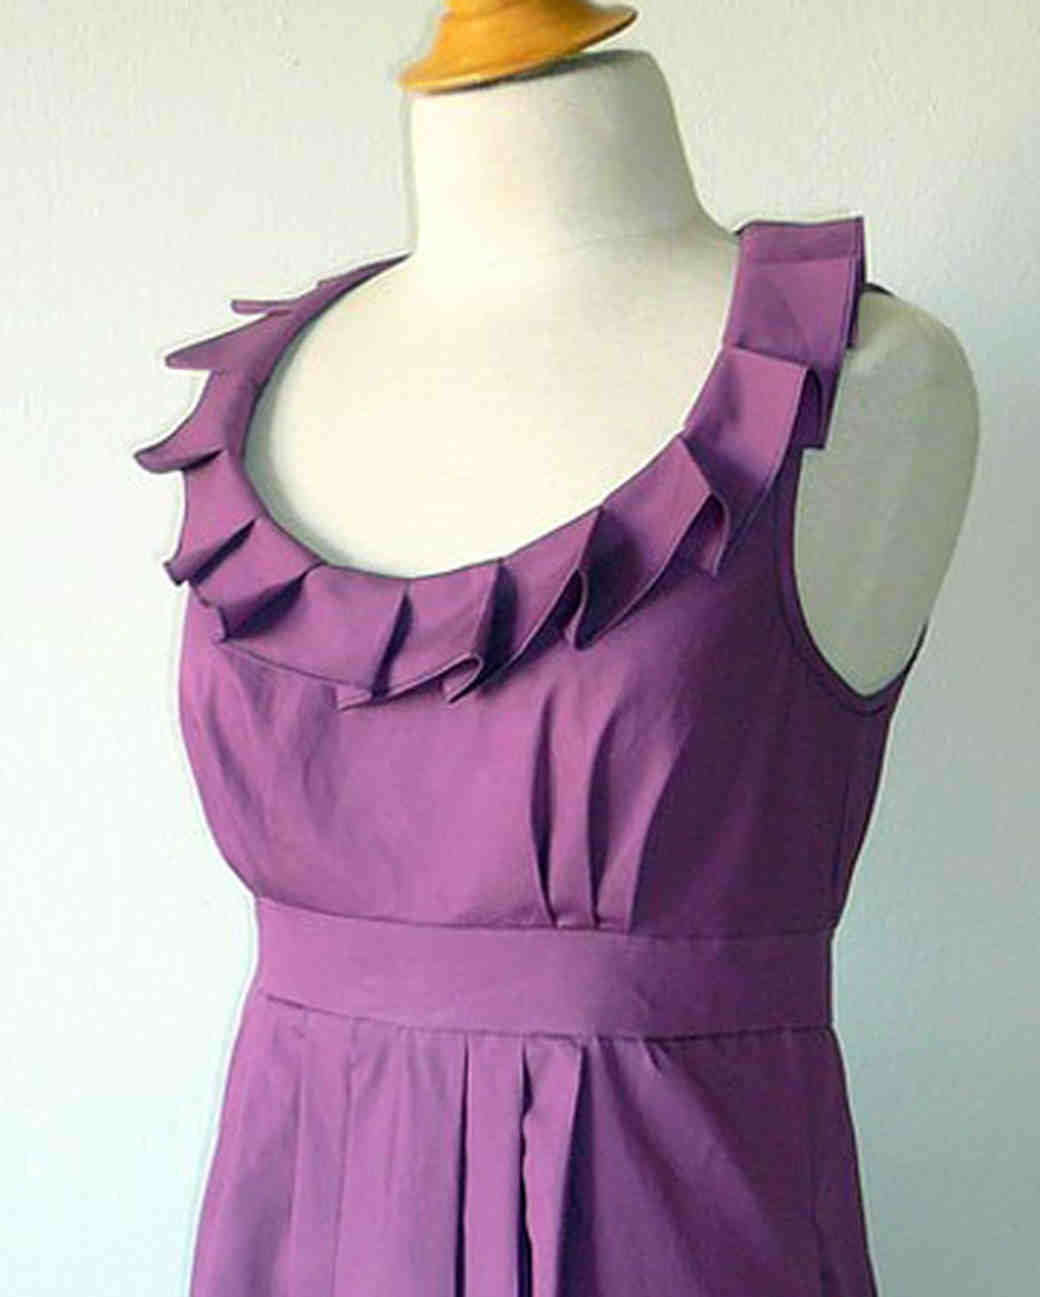 etsy_amanda_archer_purple_dress.jpg